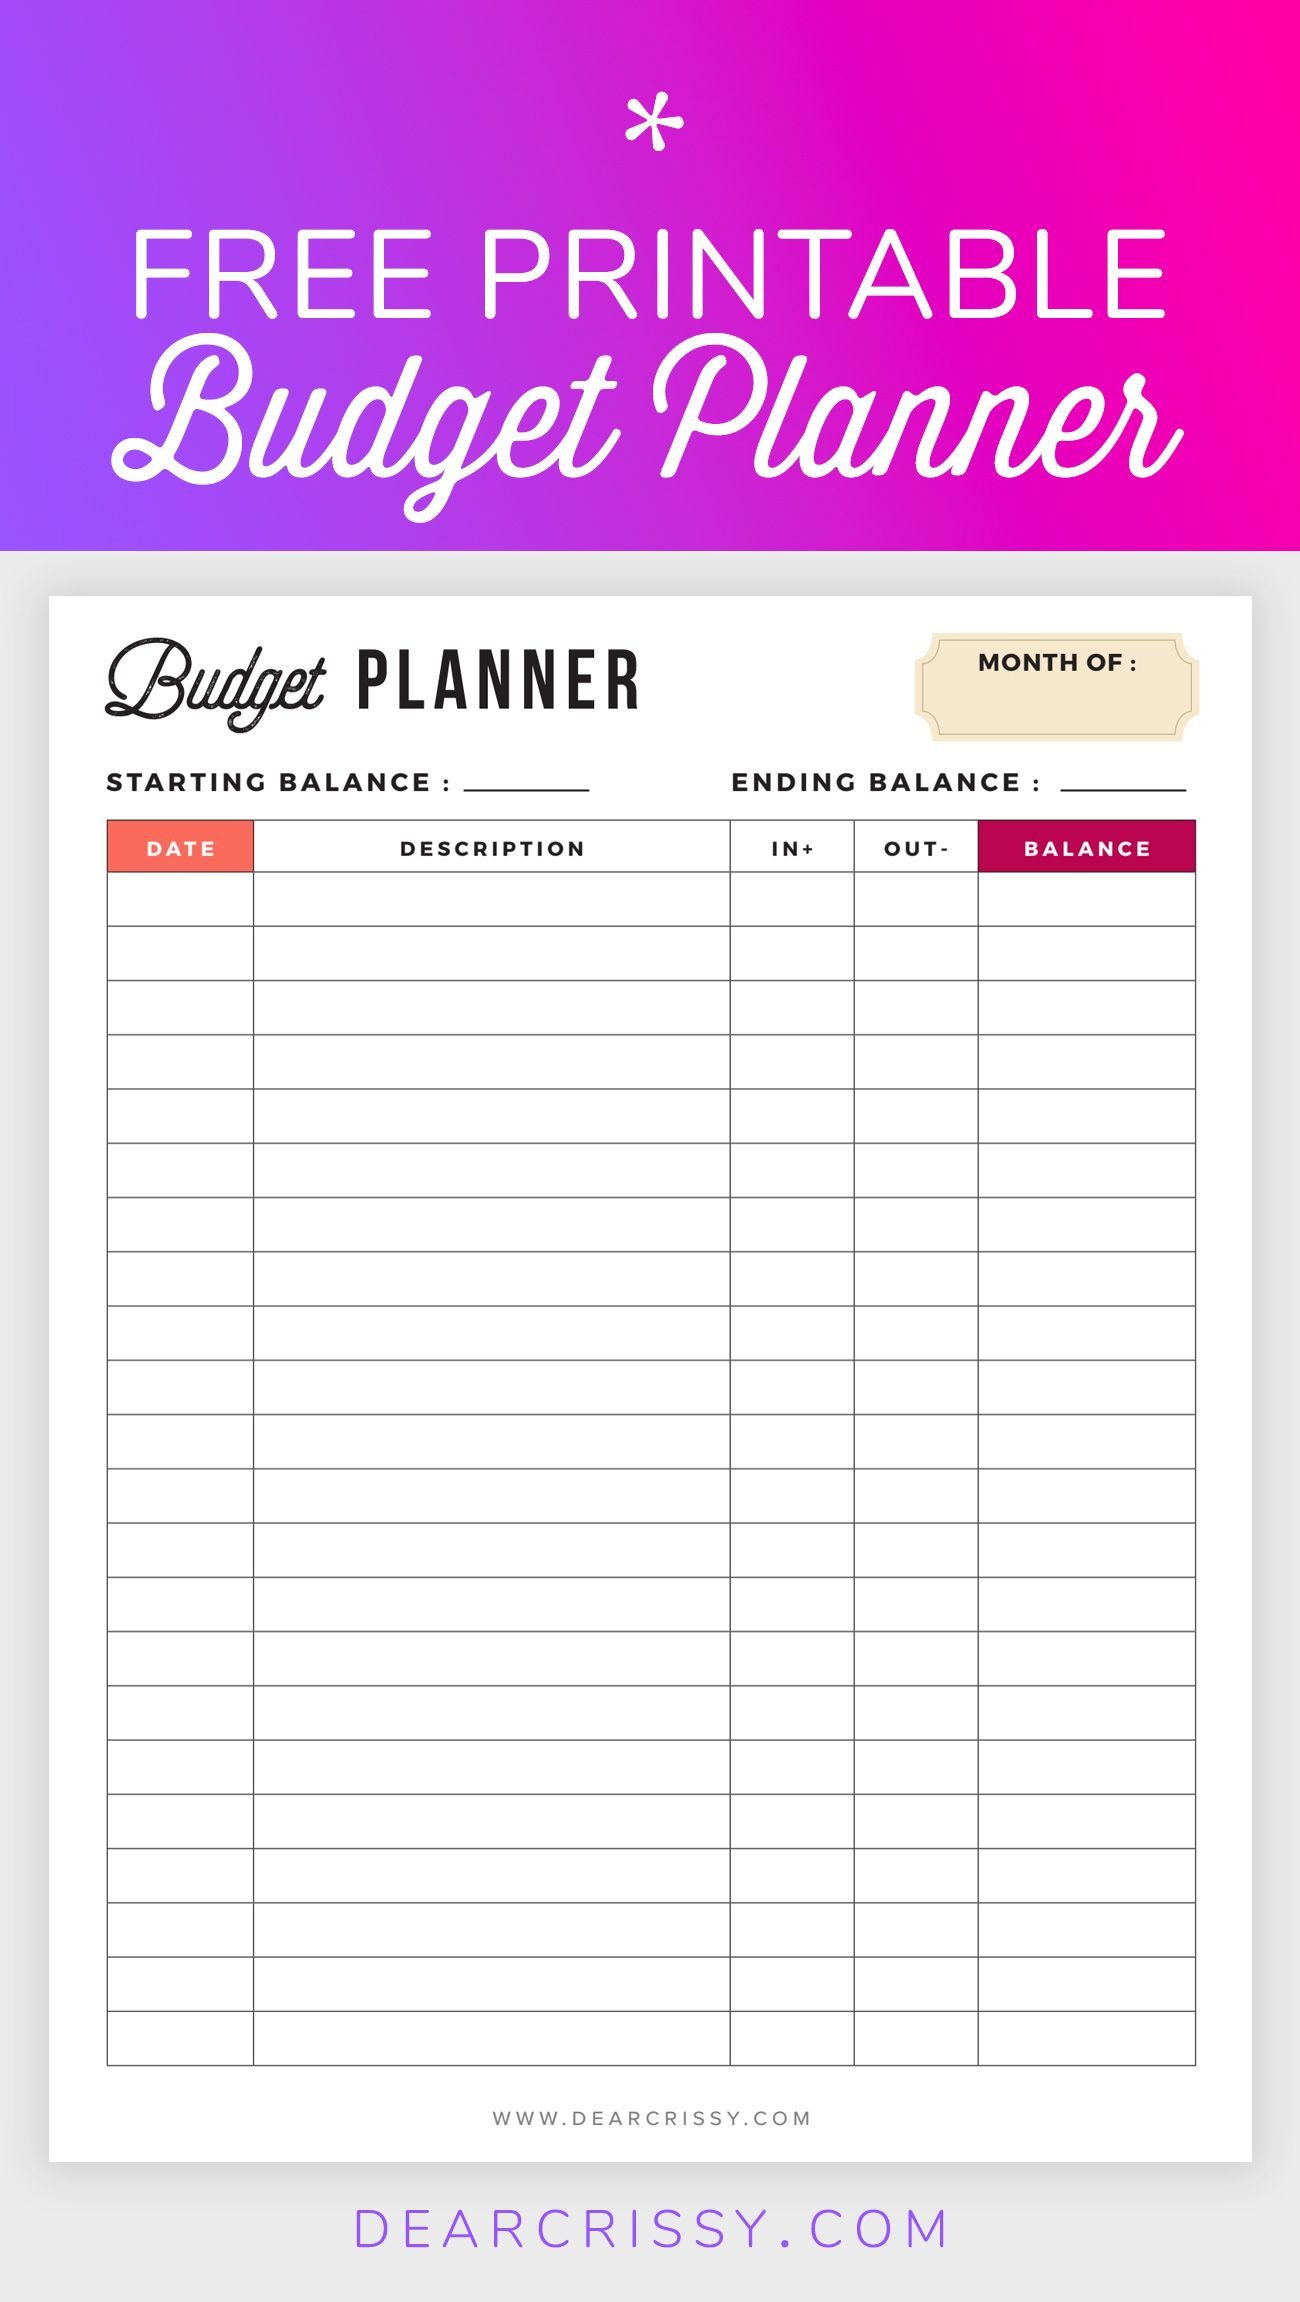 Free Budget Planner Printable - Printable Finance Planner | Office - Free Printable Bill Planner